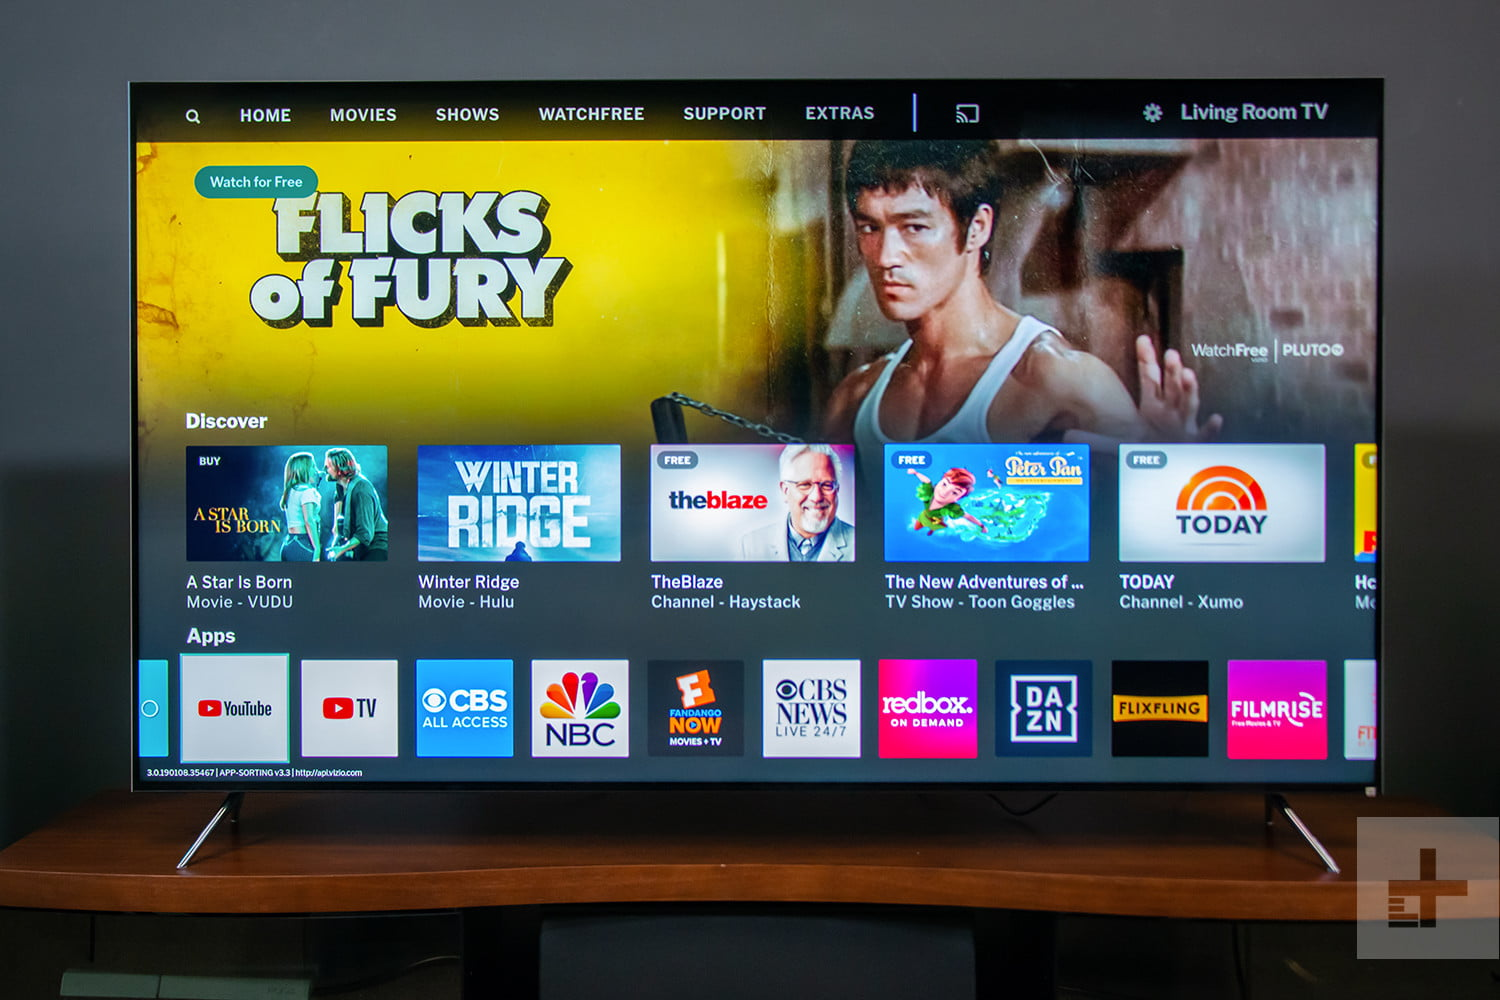 Vizio Makes Moves to Fill Your TV With Even Targeted Ads